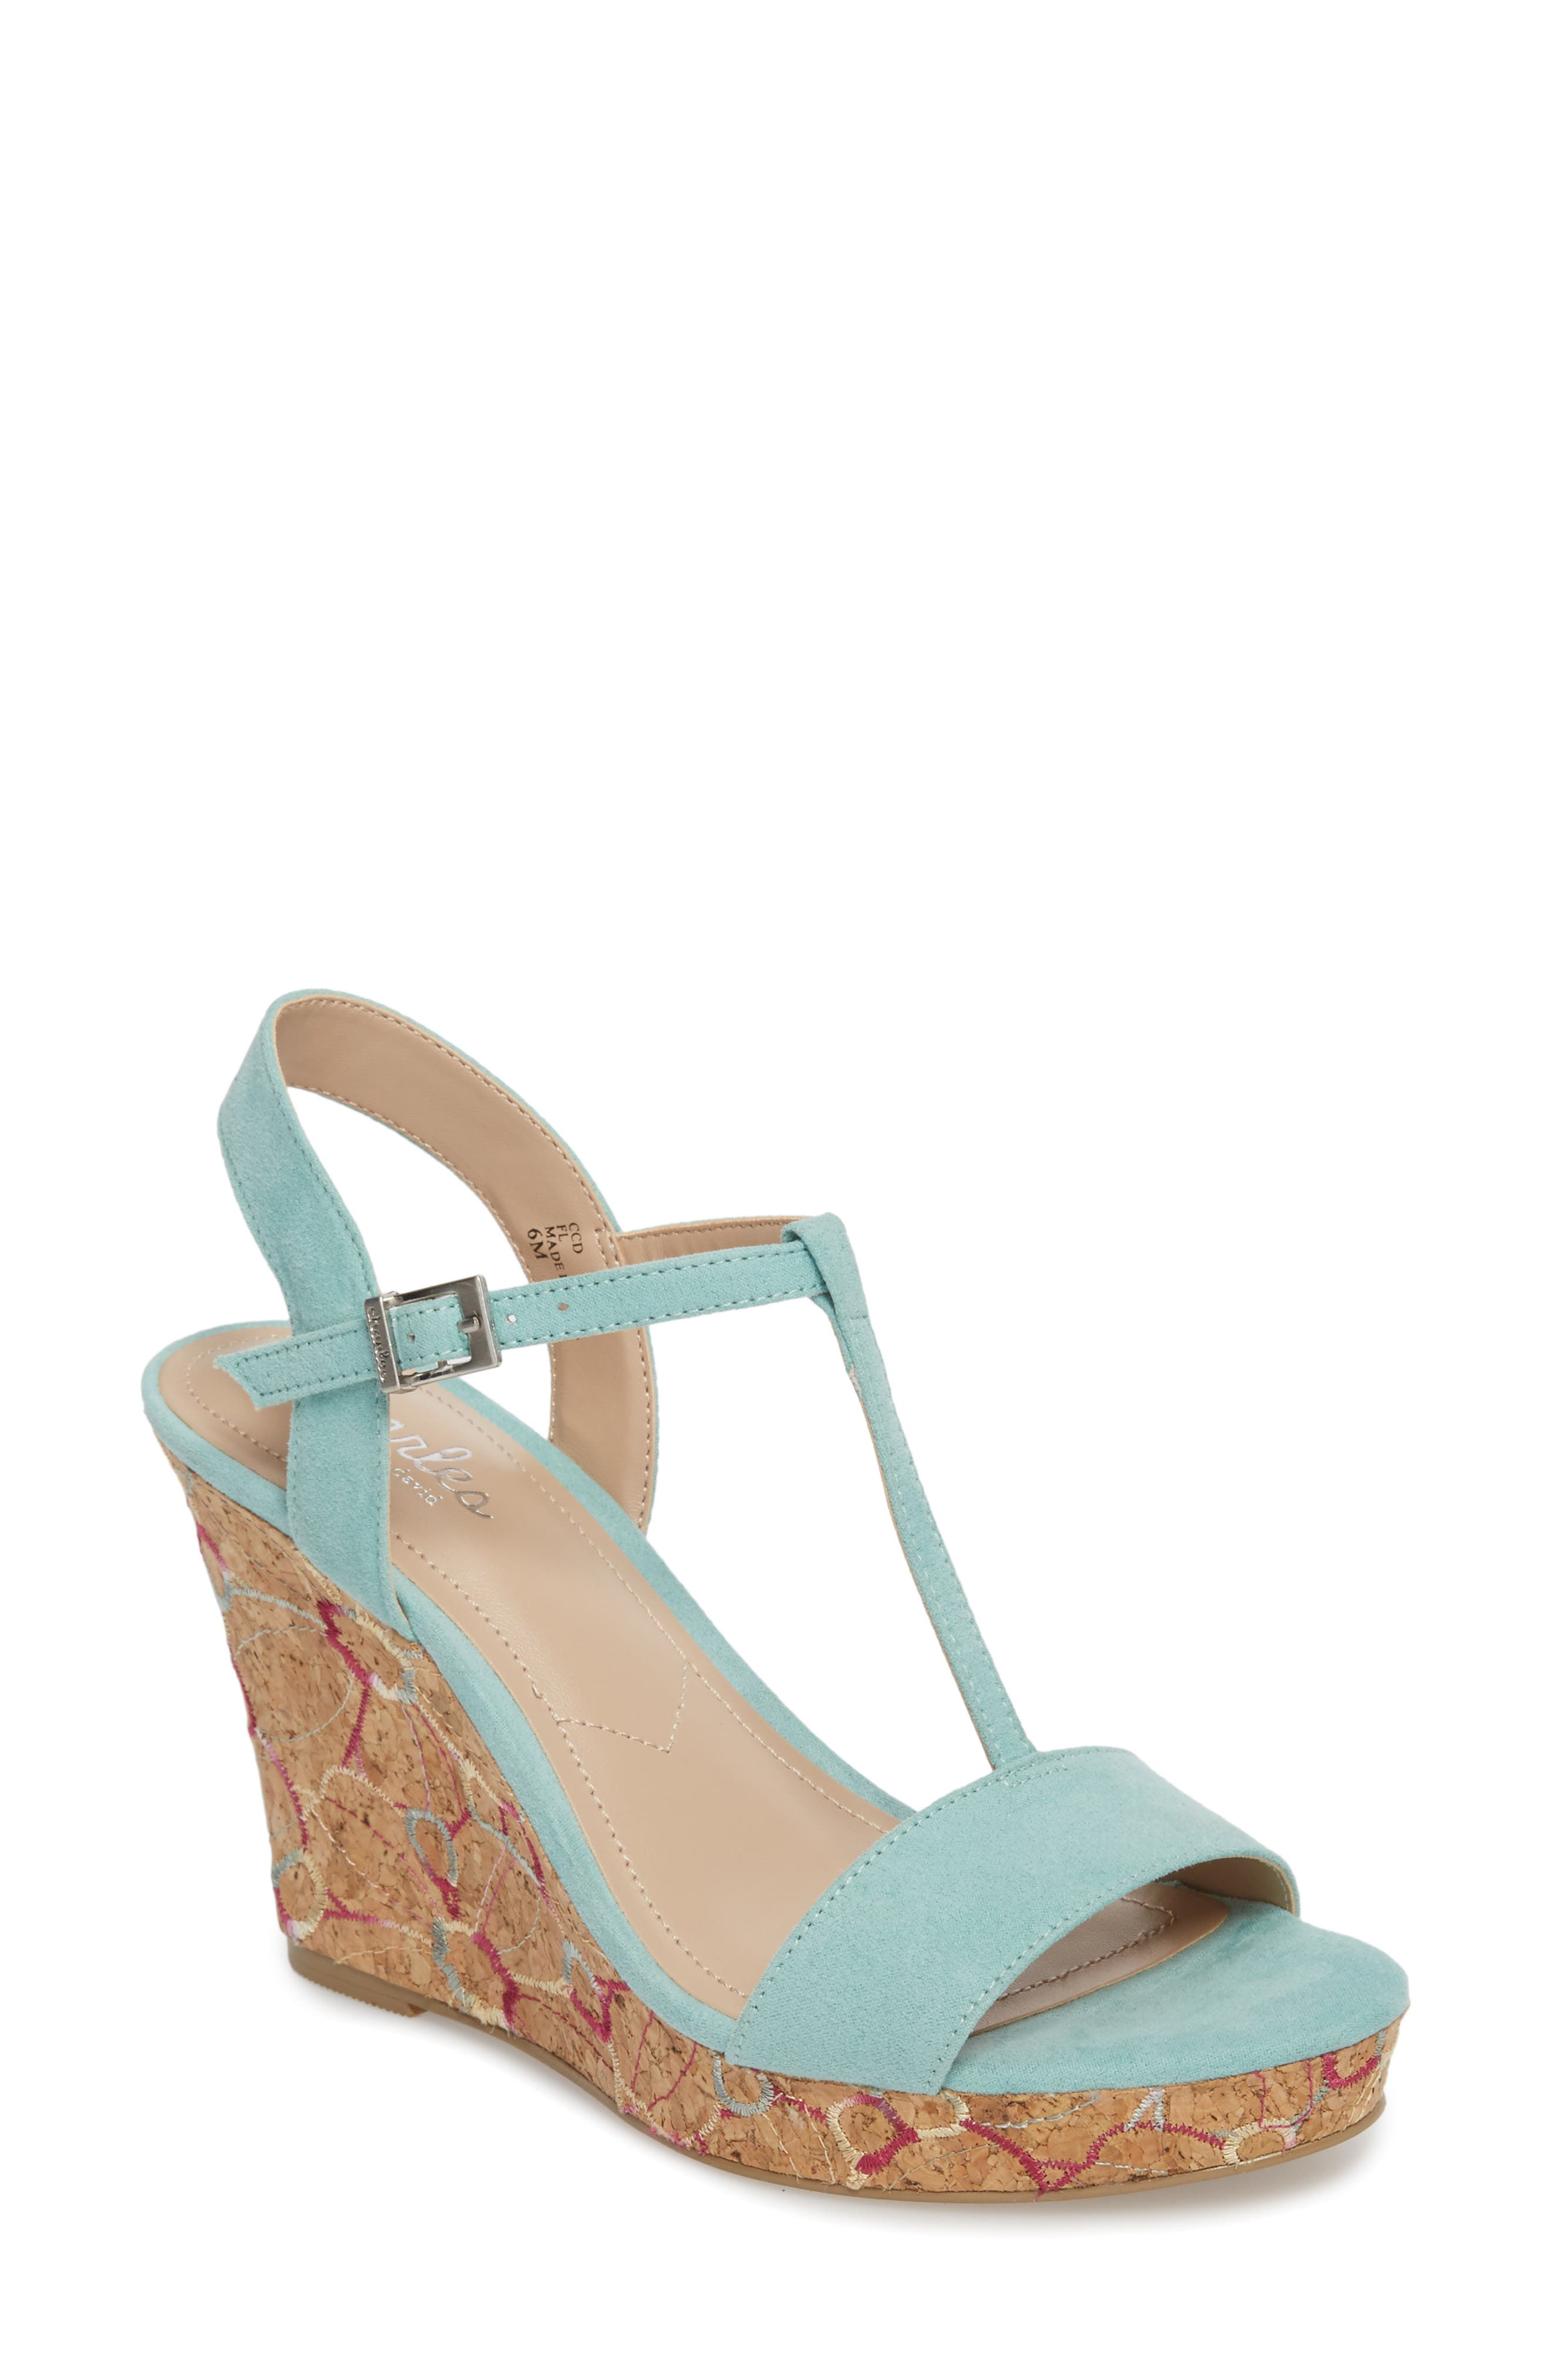 Charles By Charles David Laney Embroidered Wedge Sandal, Green